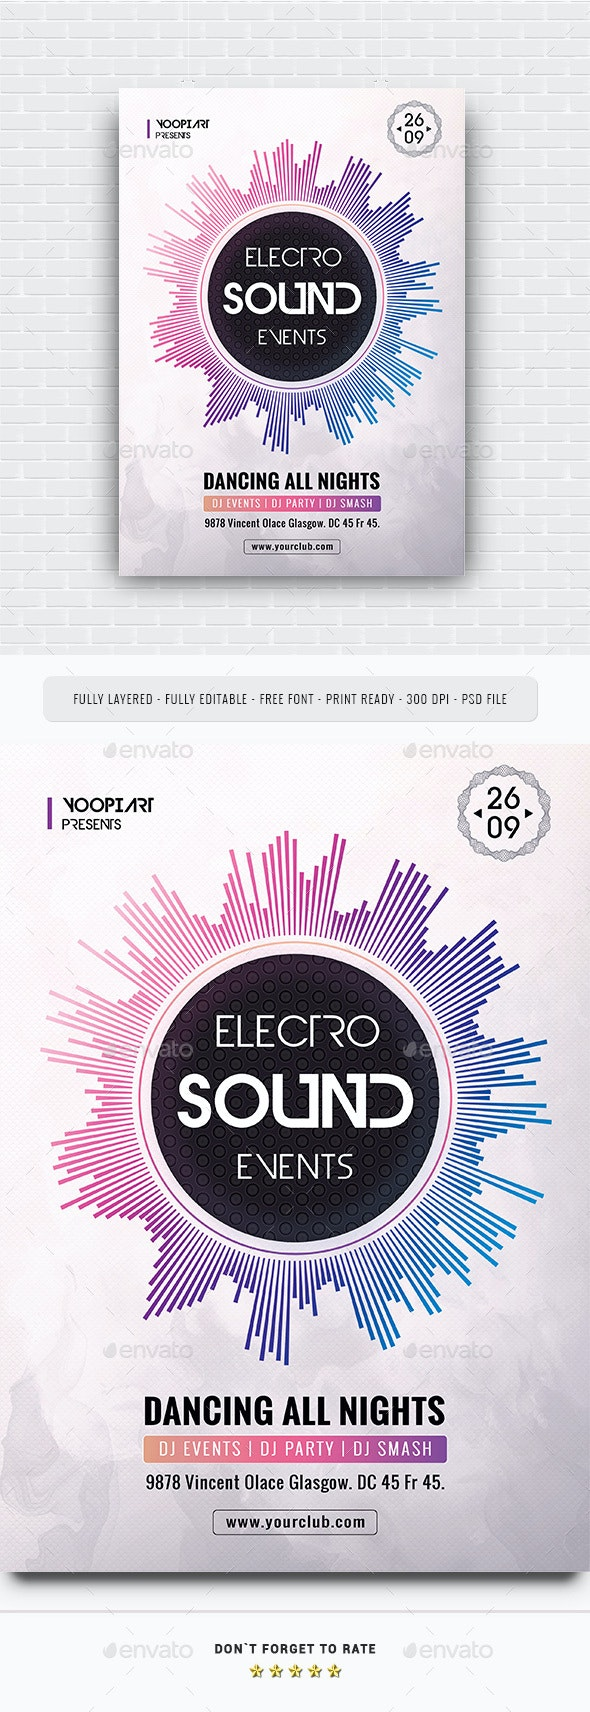 Electro Sound Events Flyer - Events Flyers